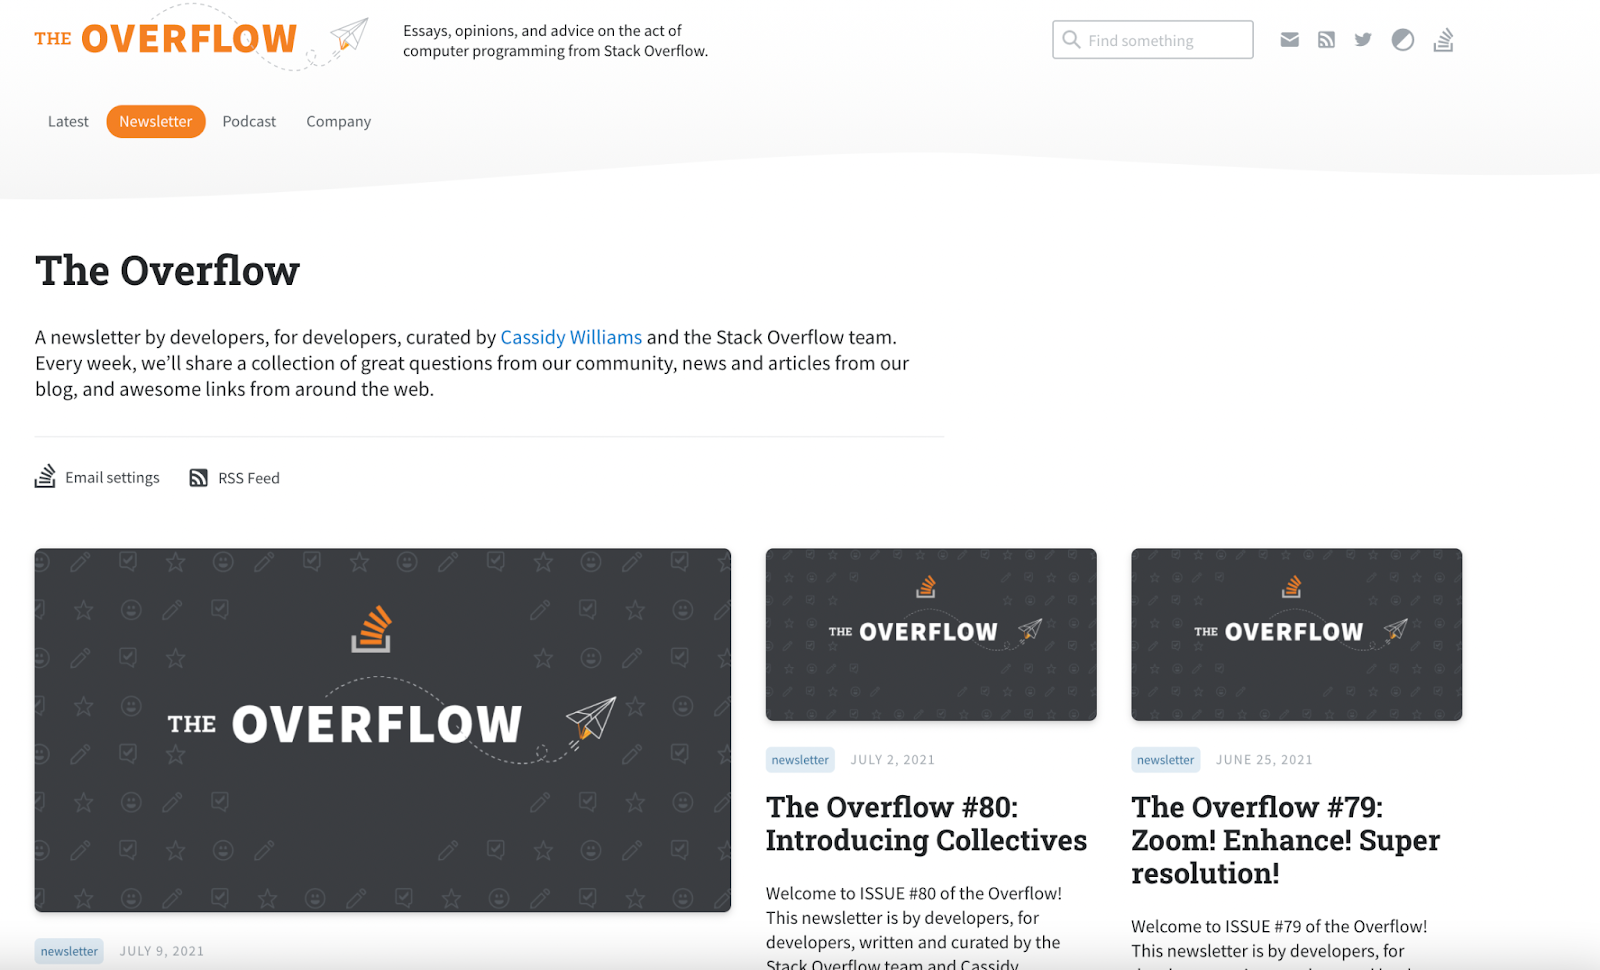 Preview all of Stack Overflow's emails